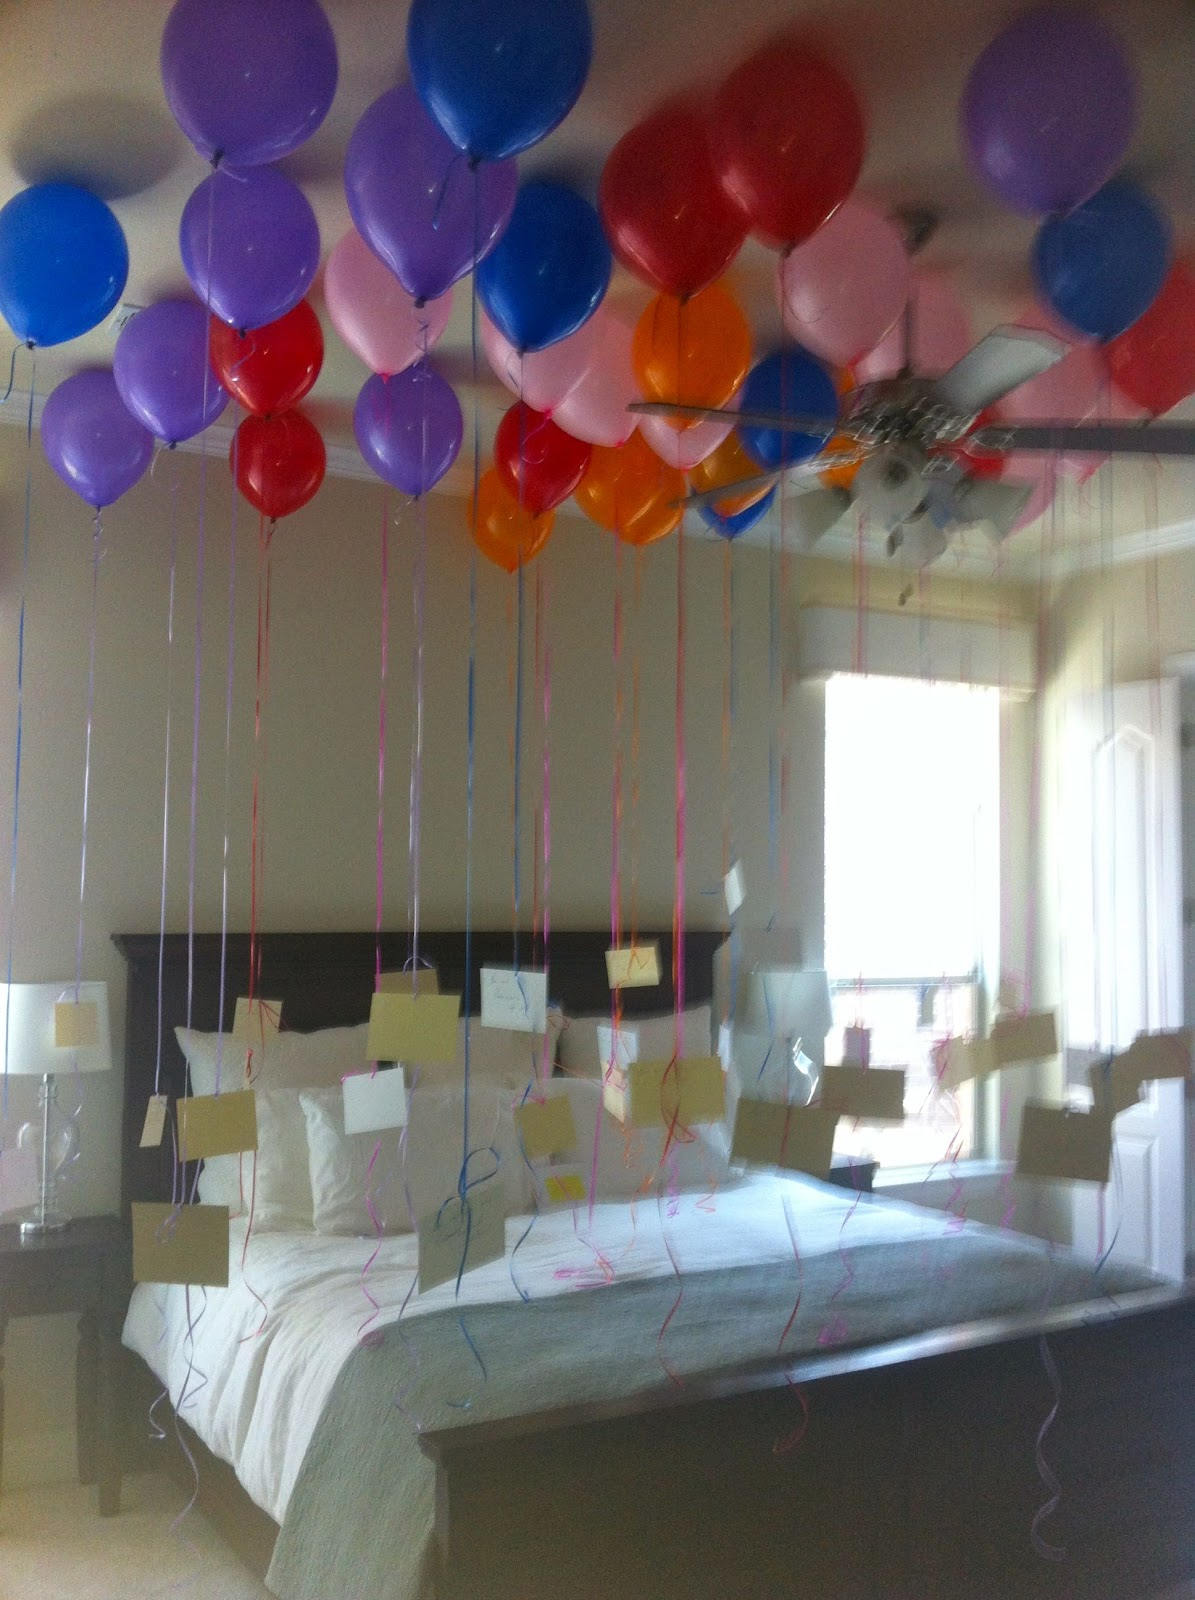 37 balloons- and attached to each balloon was a reason why I love him.